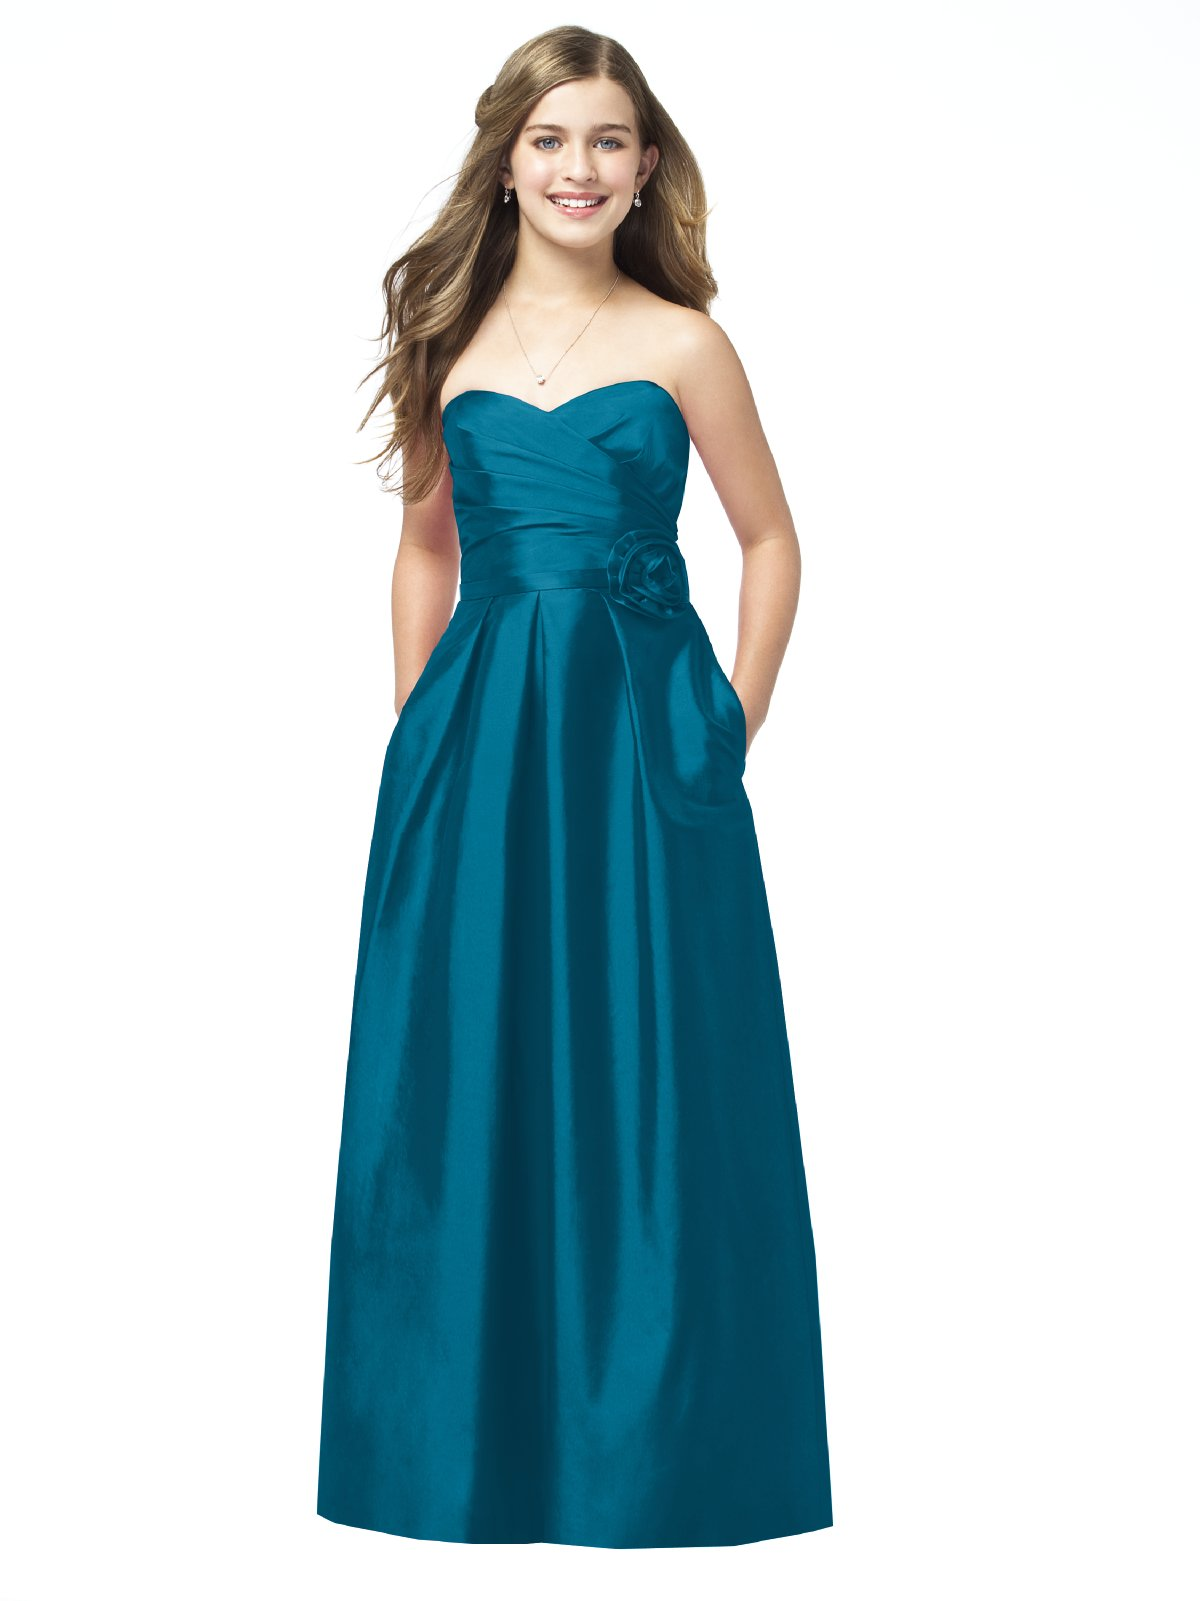 Teal A Line Strapless Sweetheart Zipper Floor Length Satin Prom Dresses With Flowers And Pockets